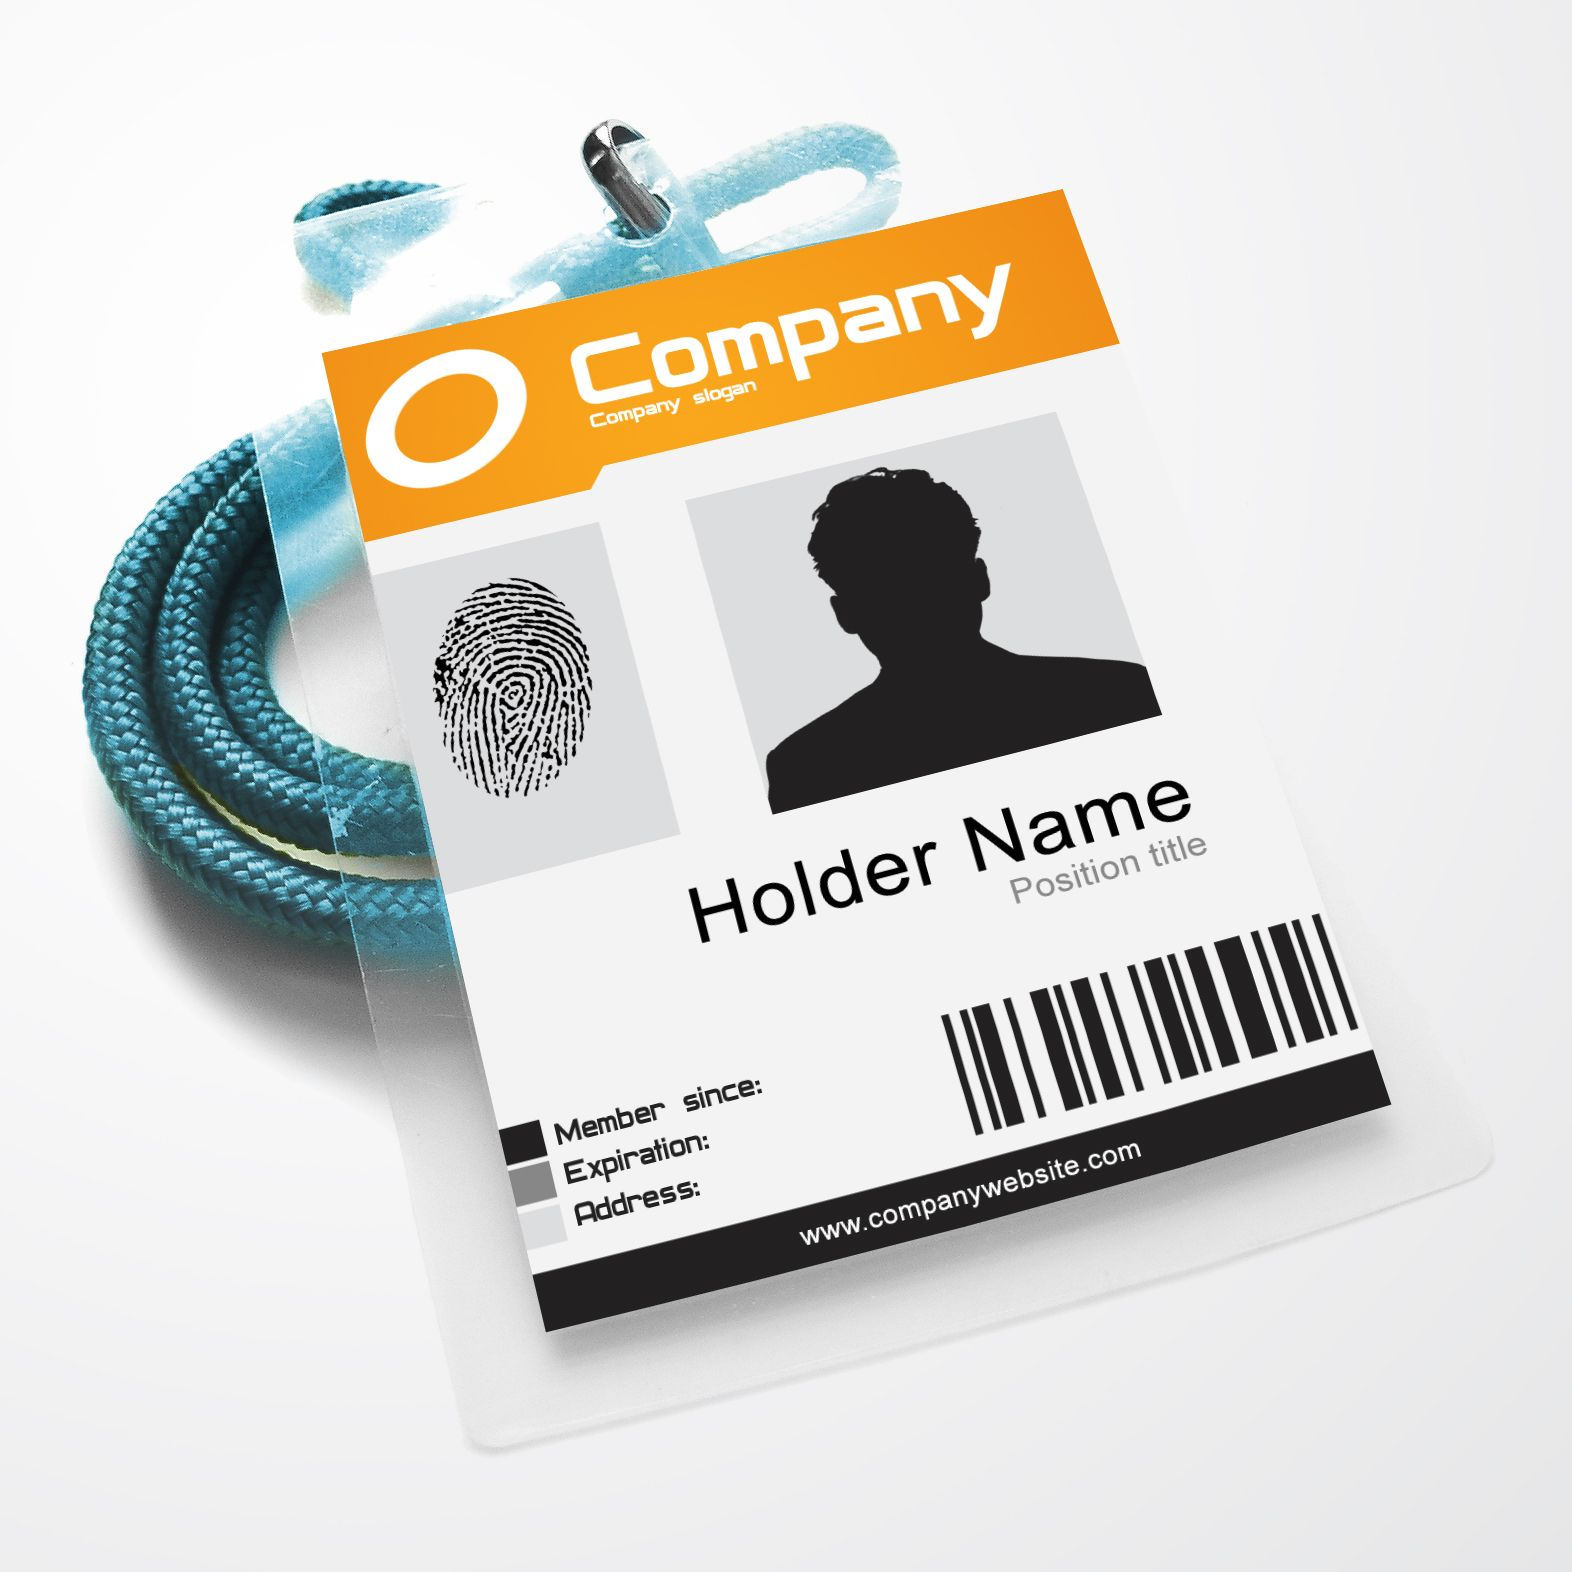 Company+id+template+psd.jpg (1572×1572) | gafetes | Pinterest